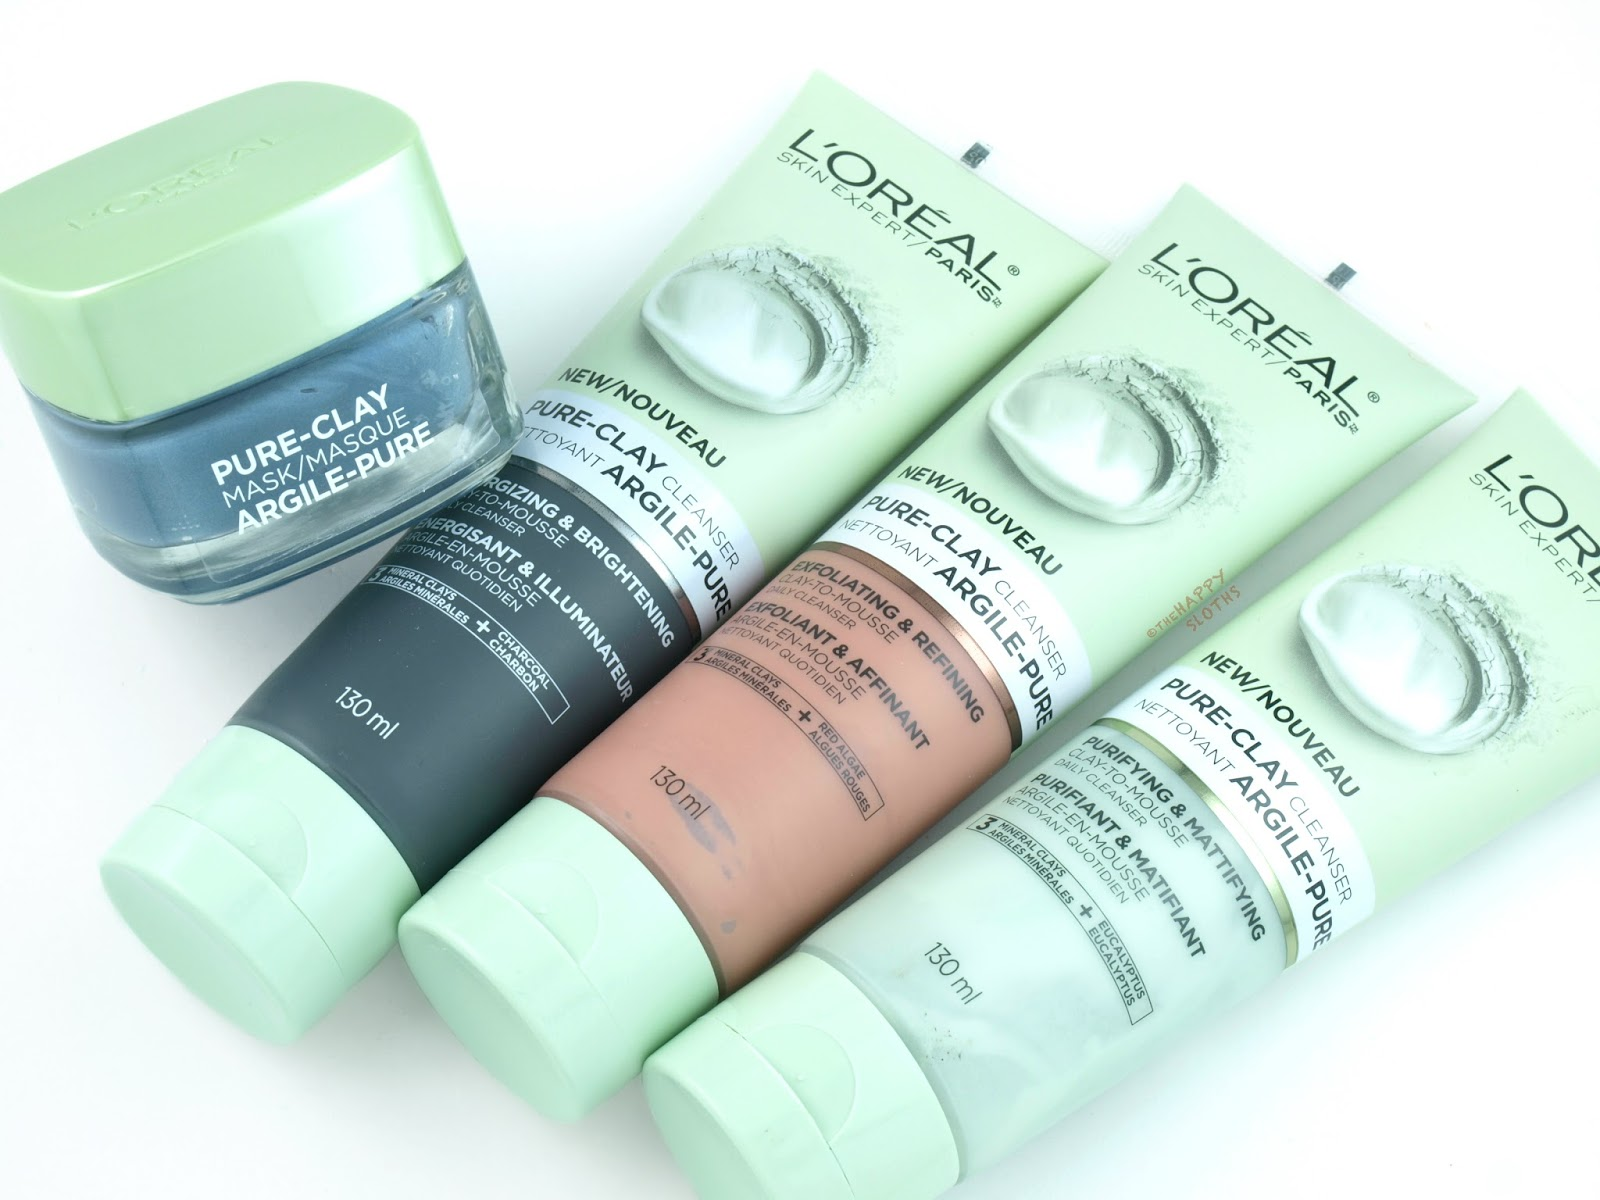 L'Oreal Pure-Clay Cleanser + Comforting & Unifying Mask: Review